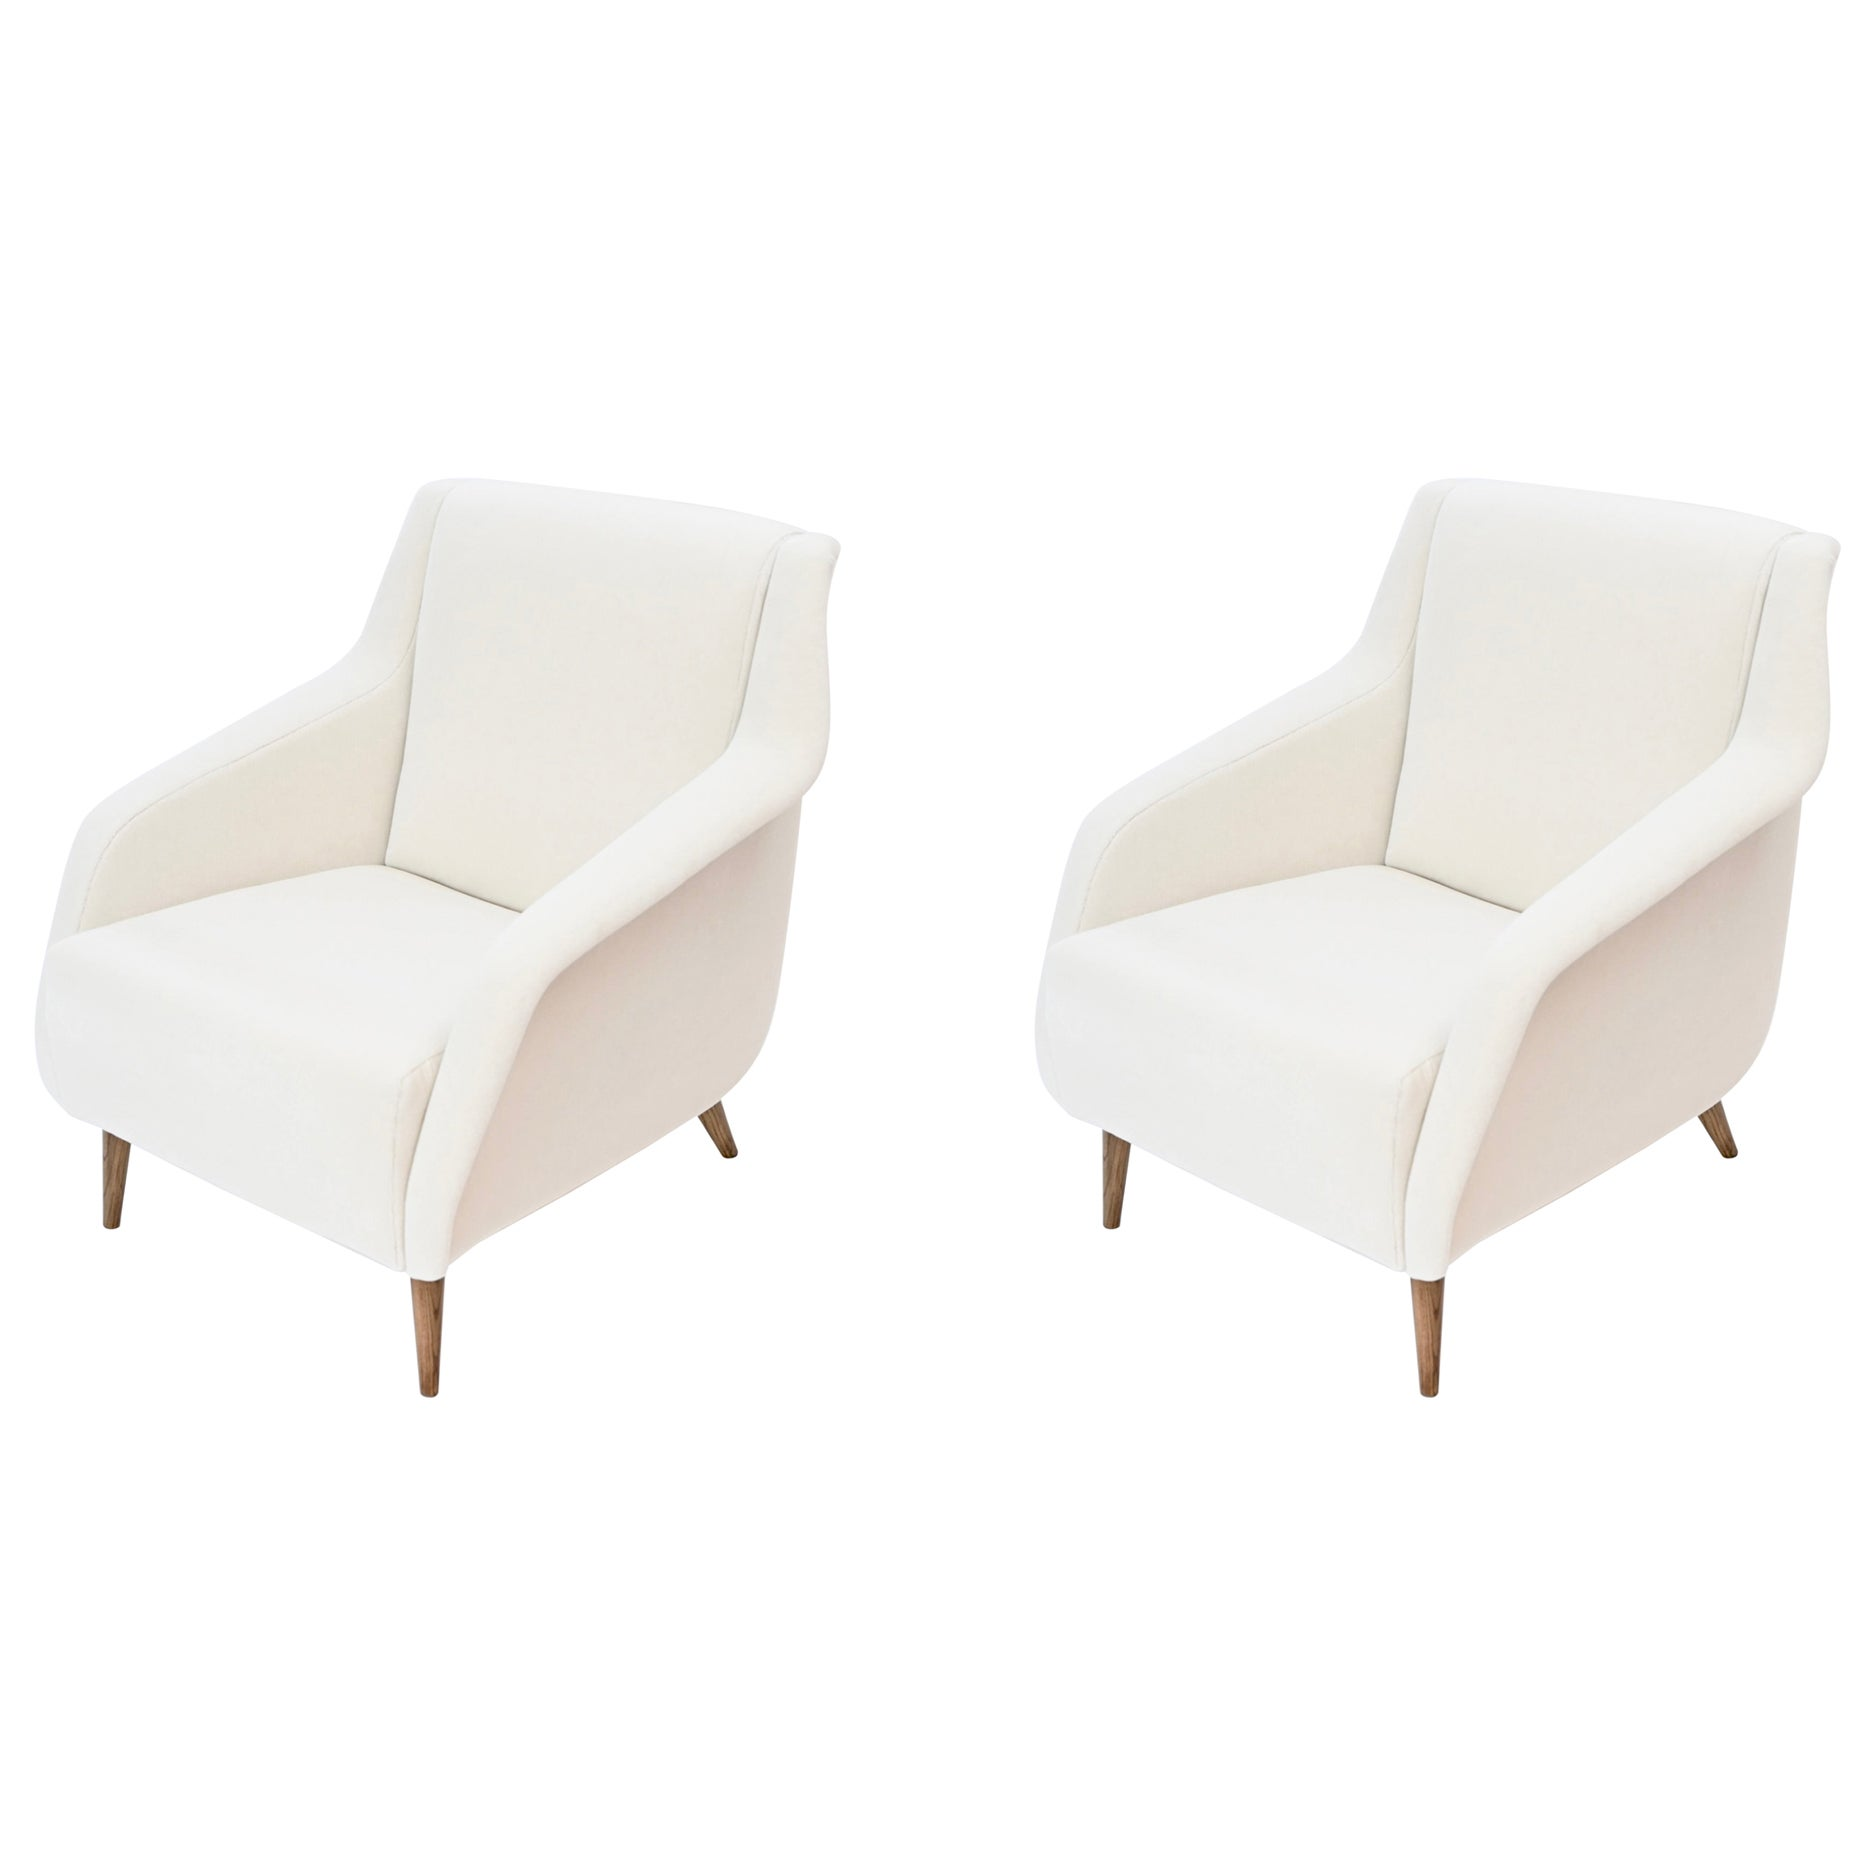 Pair of Carlo de Carli '802' Lounge Chairs by Cassina, Italy, circa 1960